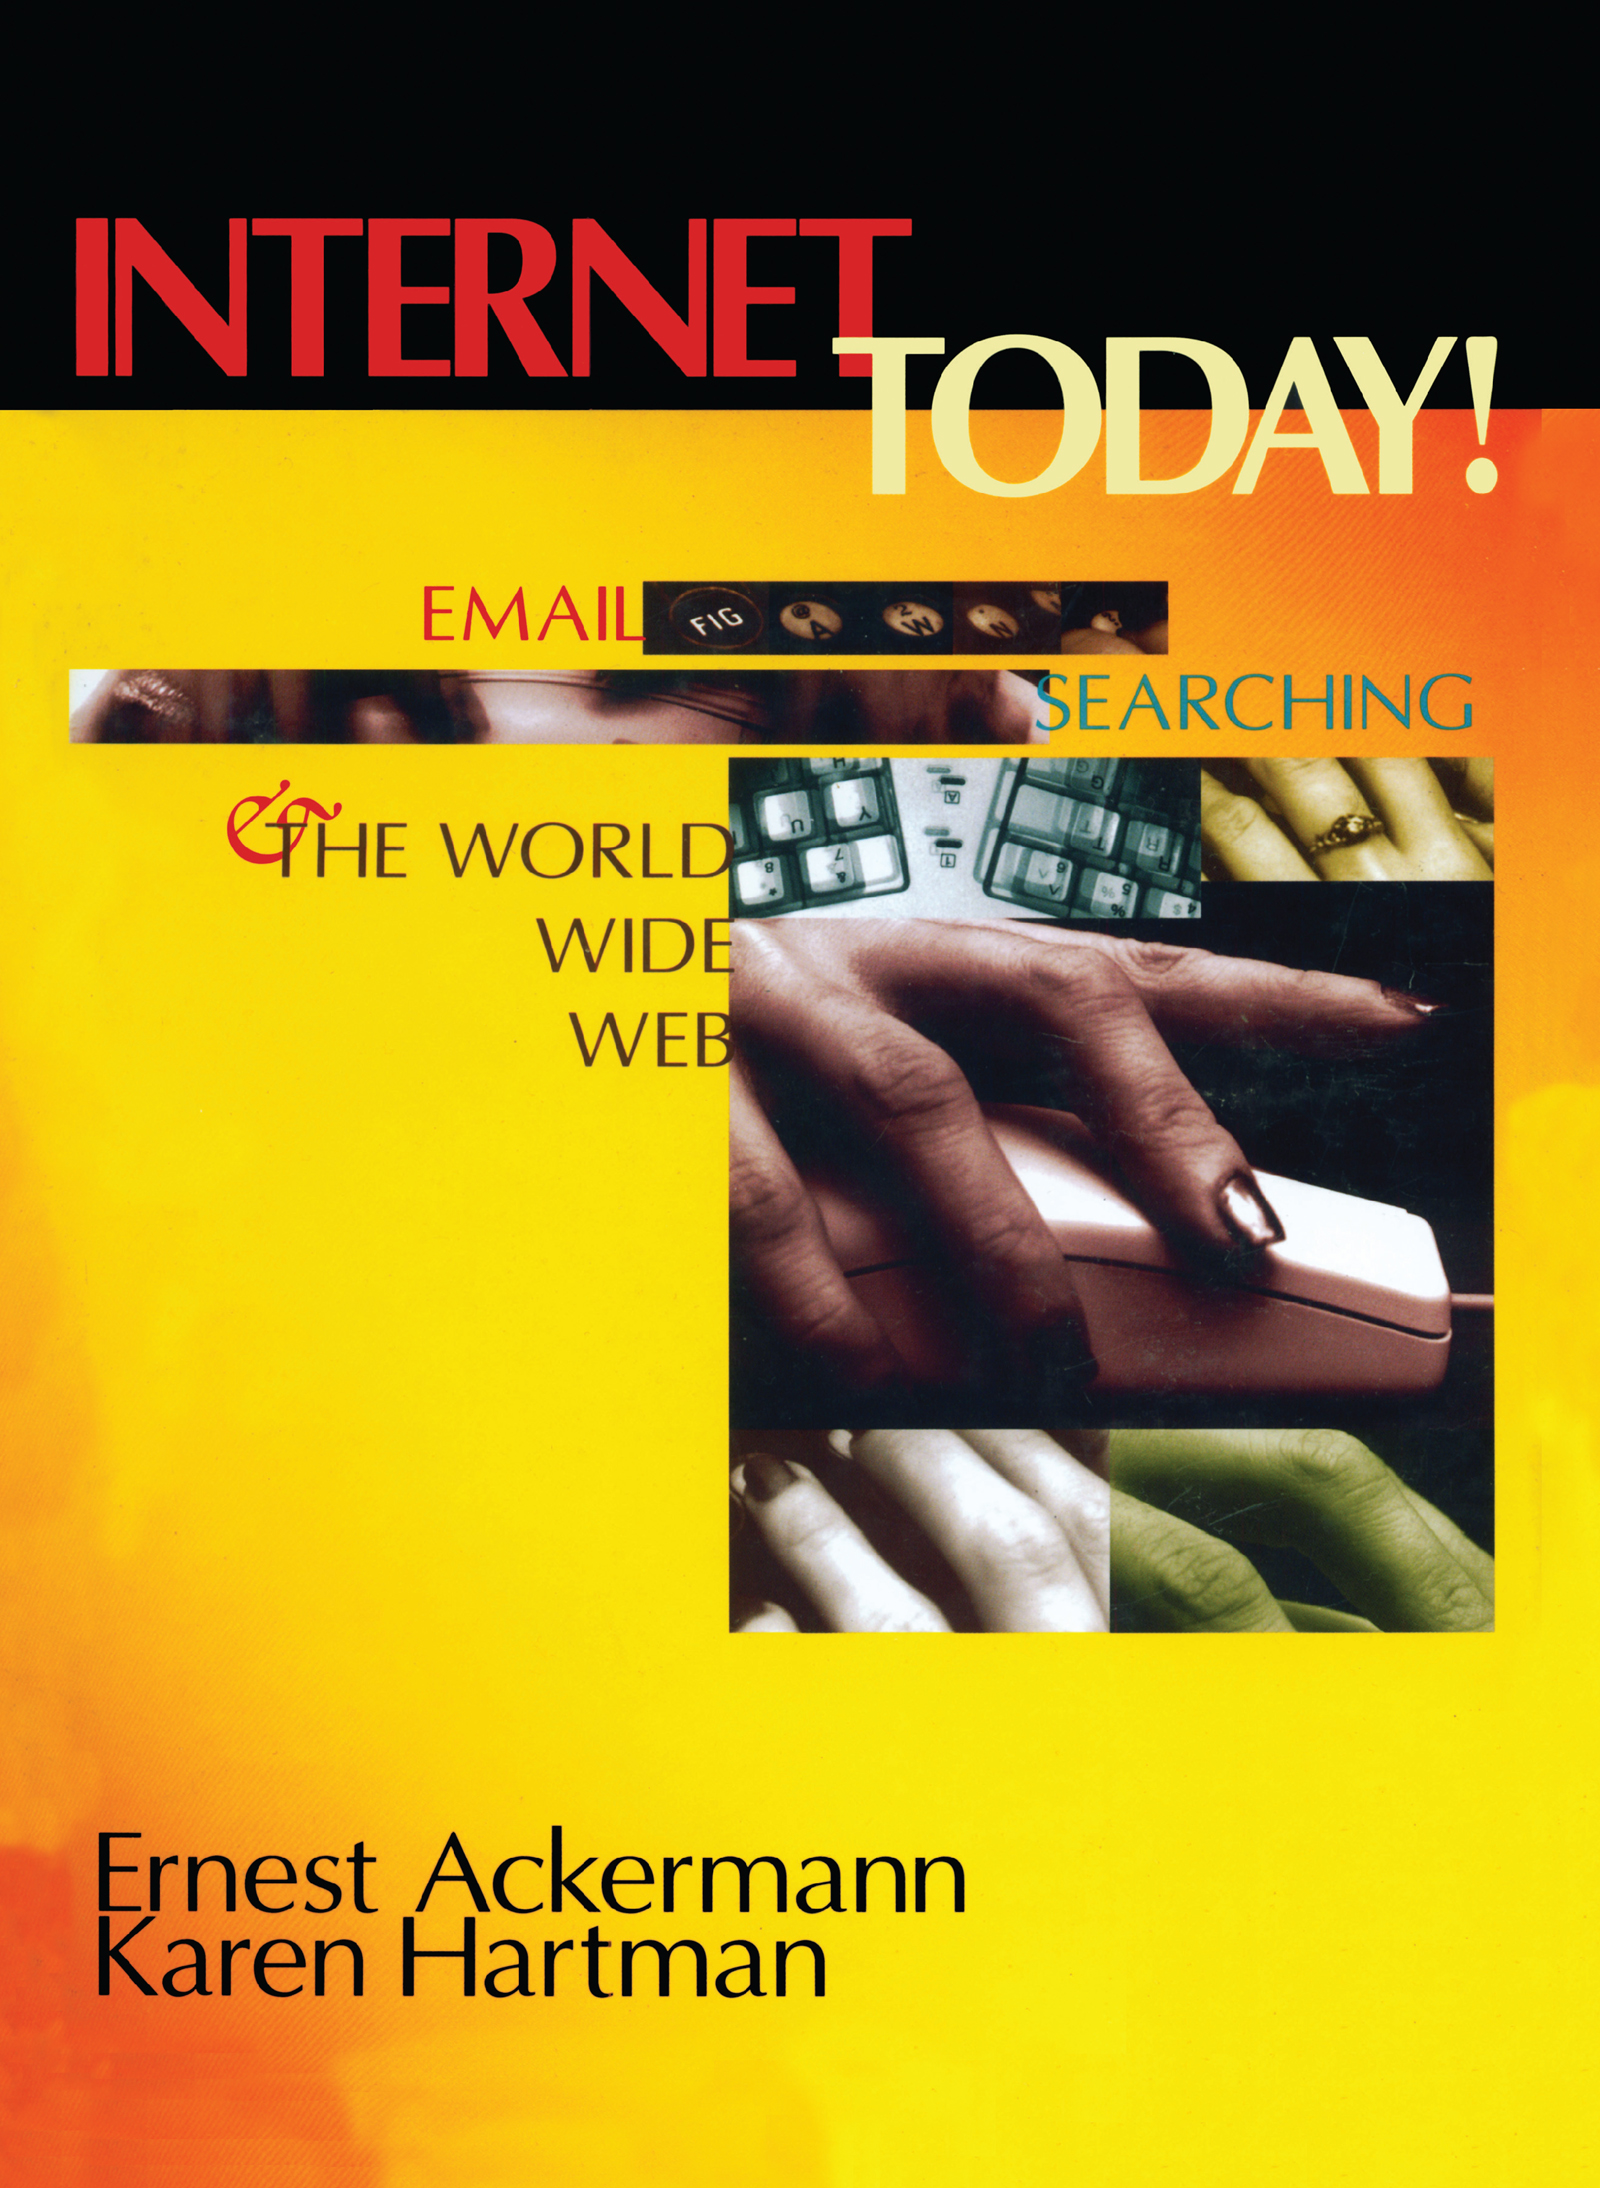 Internet Today! book cover